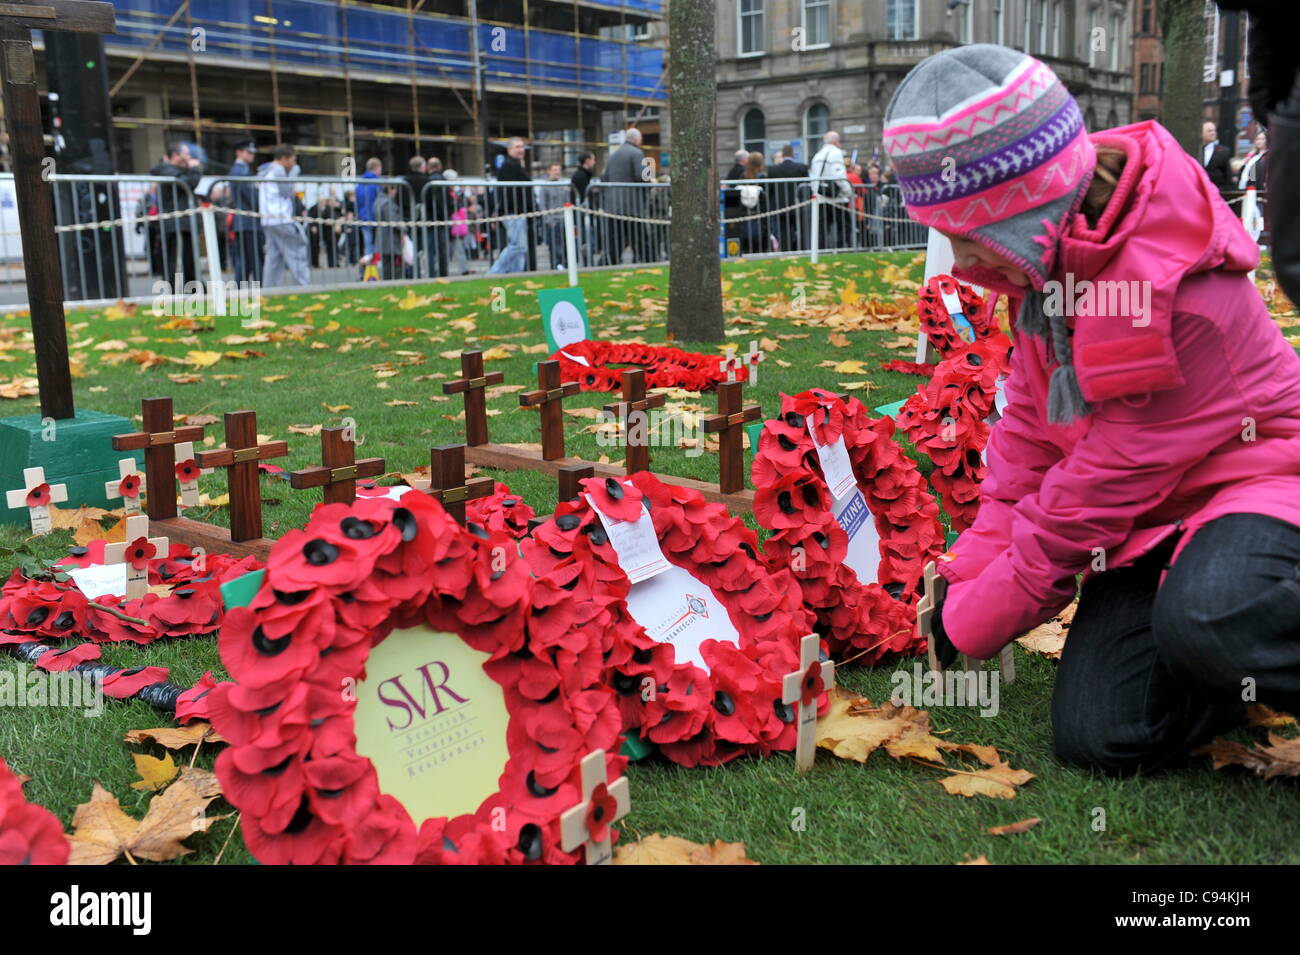 A young girl plants a cross with a poppy on it in Glasgow's Garden of Remembrance during Armistice Day commemoration. - Stock Image